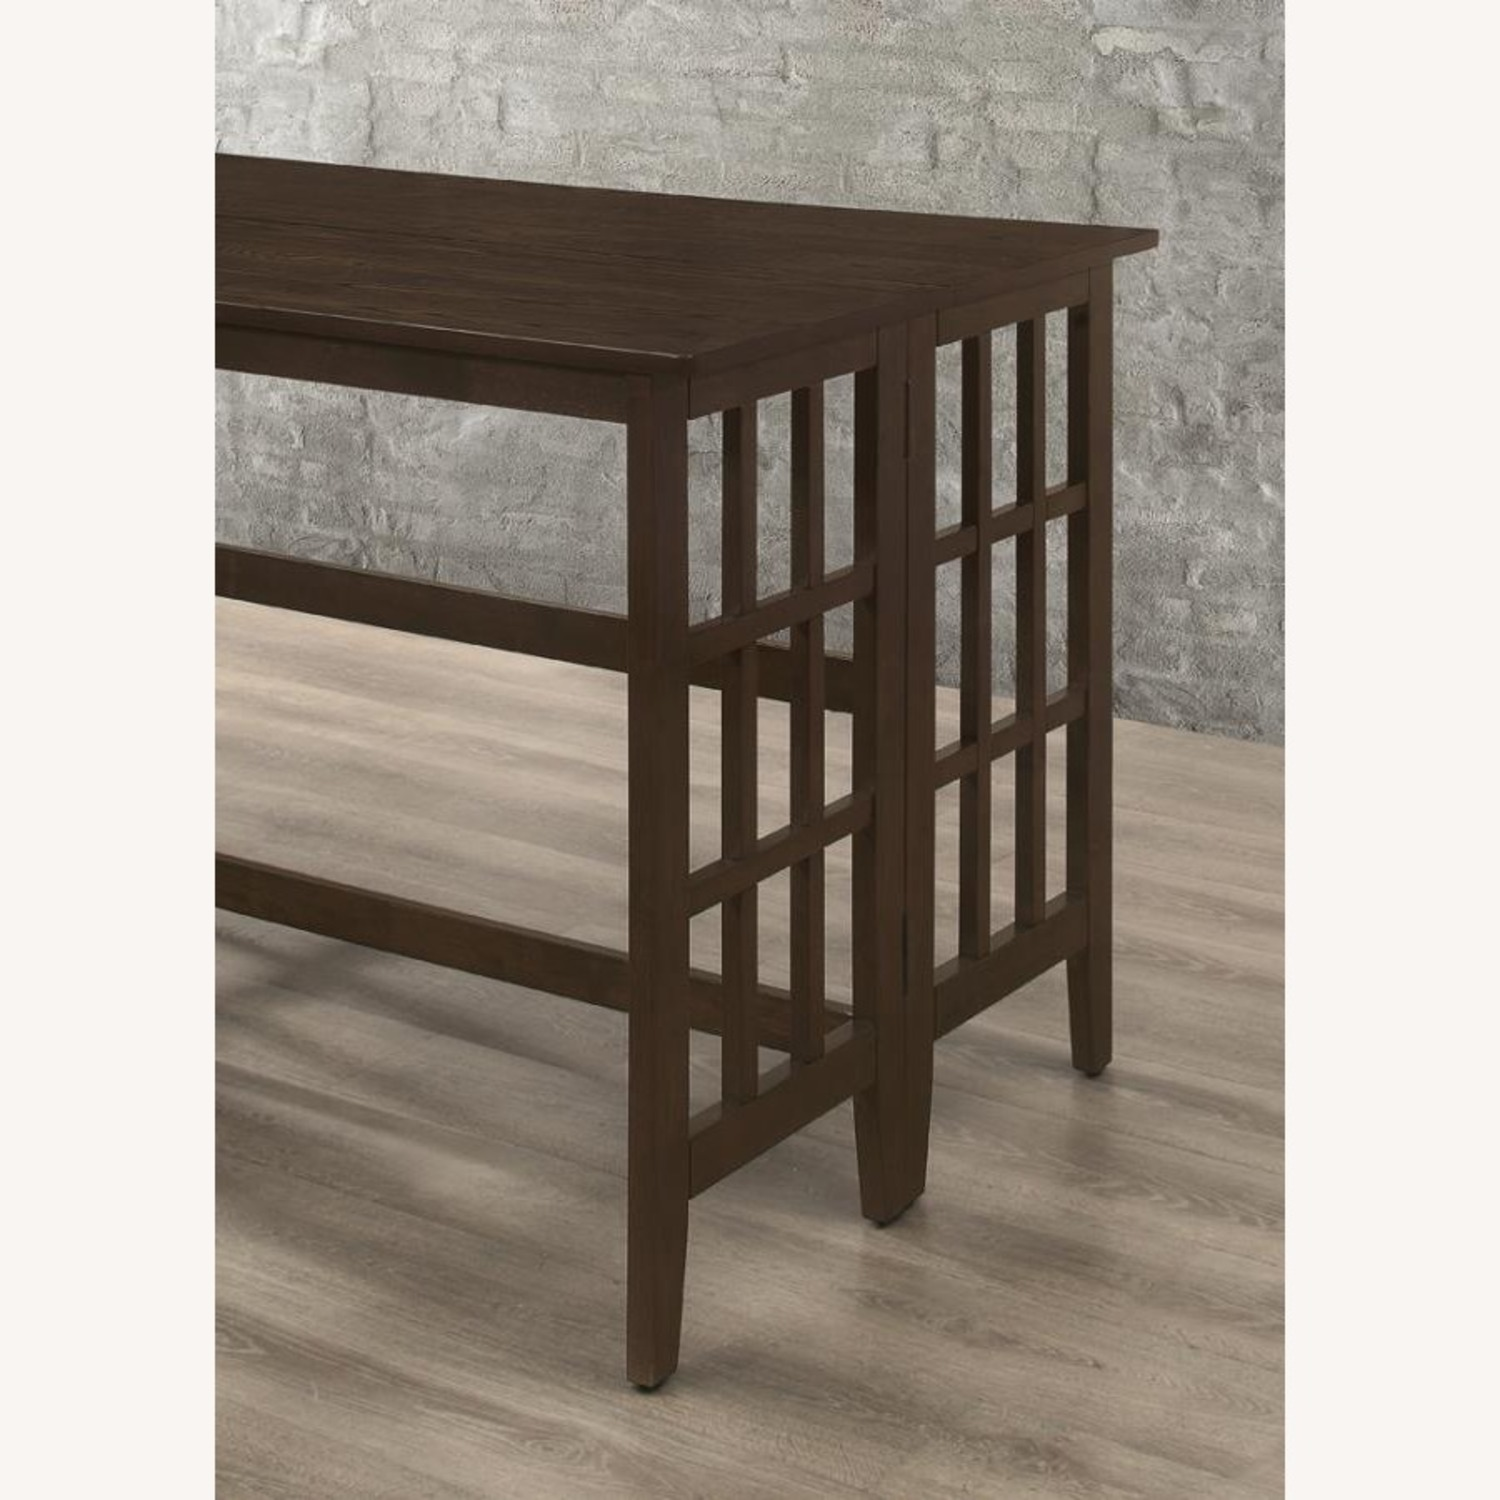 Counter Table In Brown W/ Table Top Drop Down - image-2